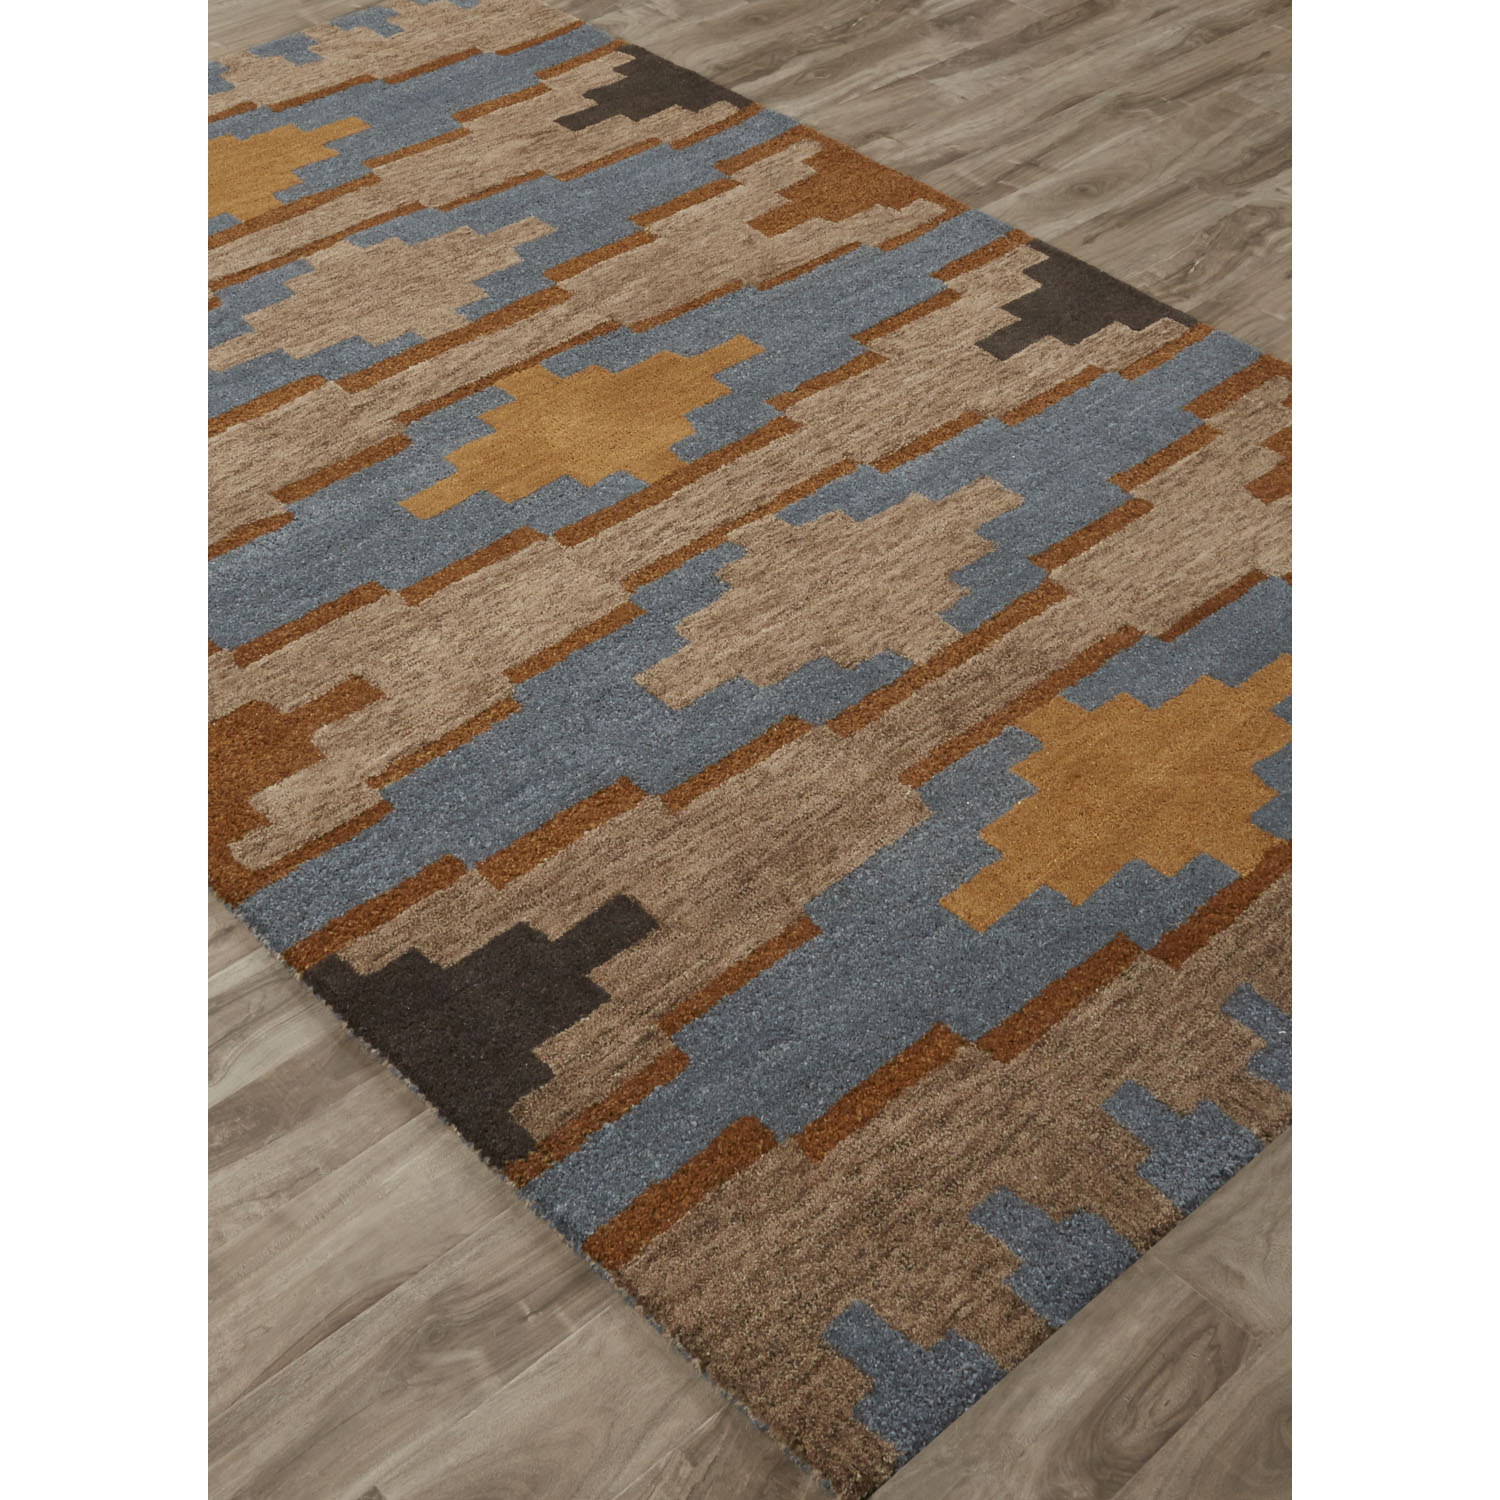 Southwest Style Rugs Native American Style Rugs